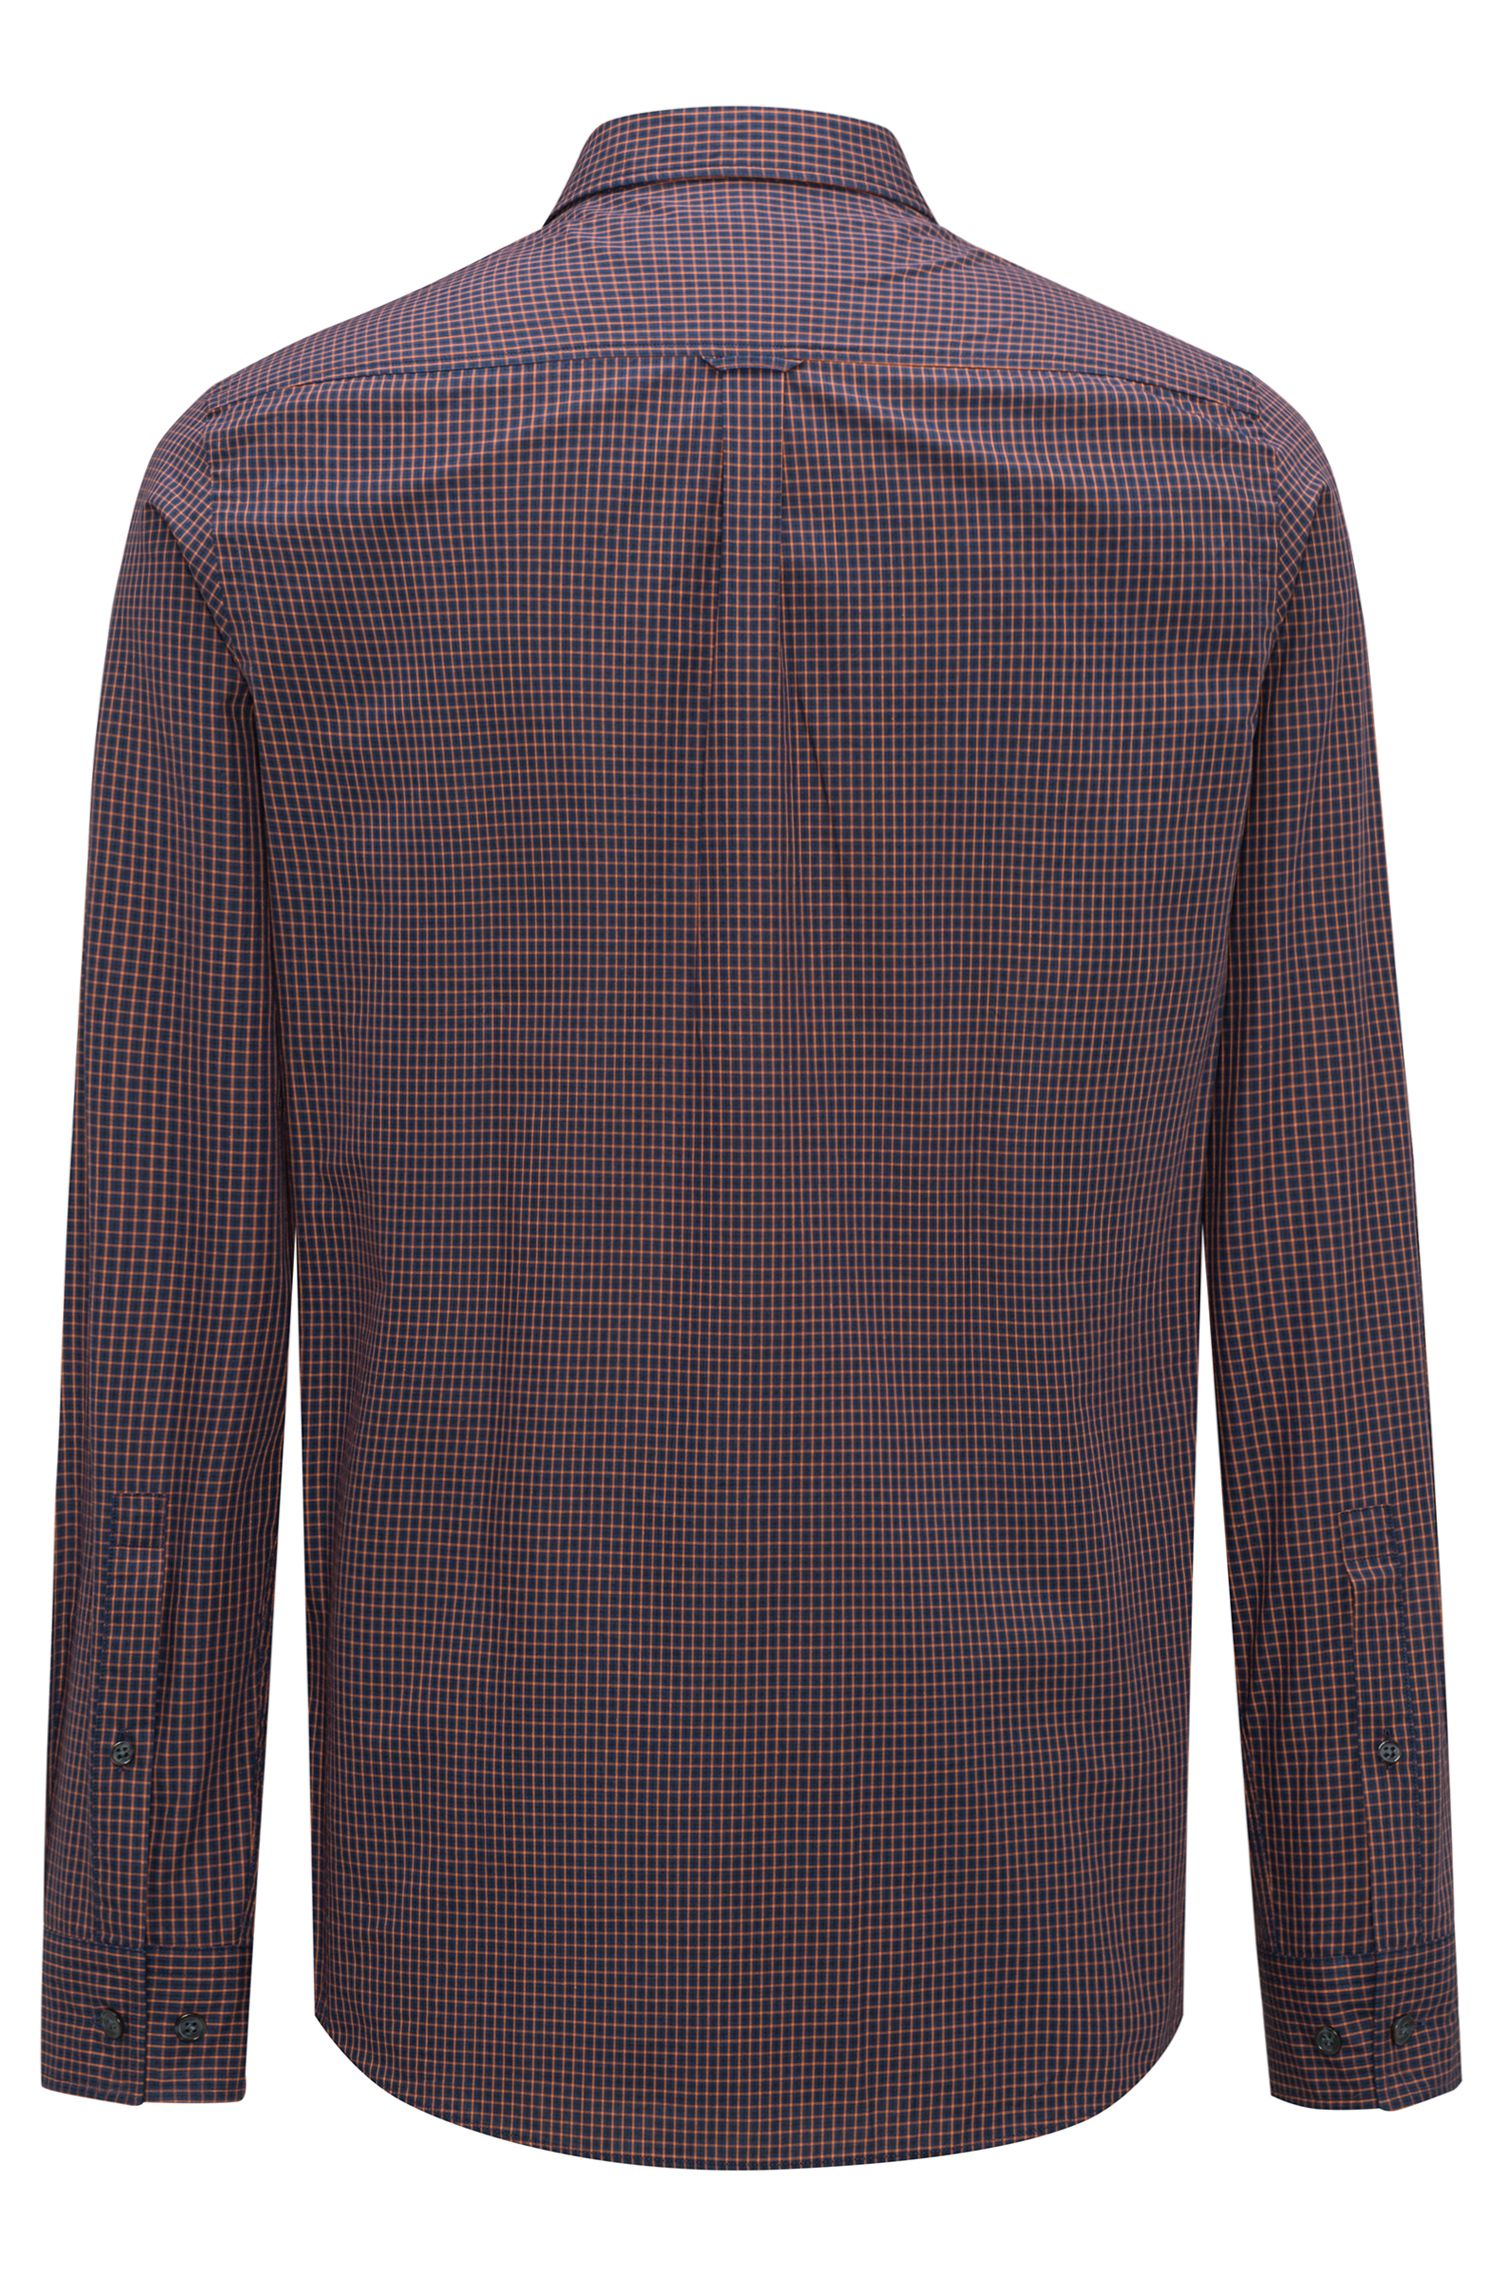 Camicia relaxed fit in tweed di cotone a quadri mélange, Blu scuro